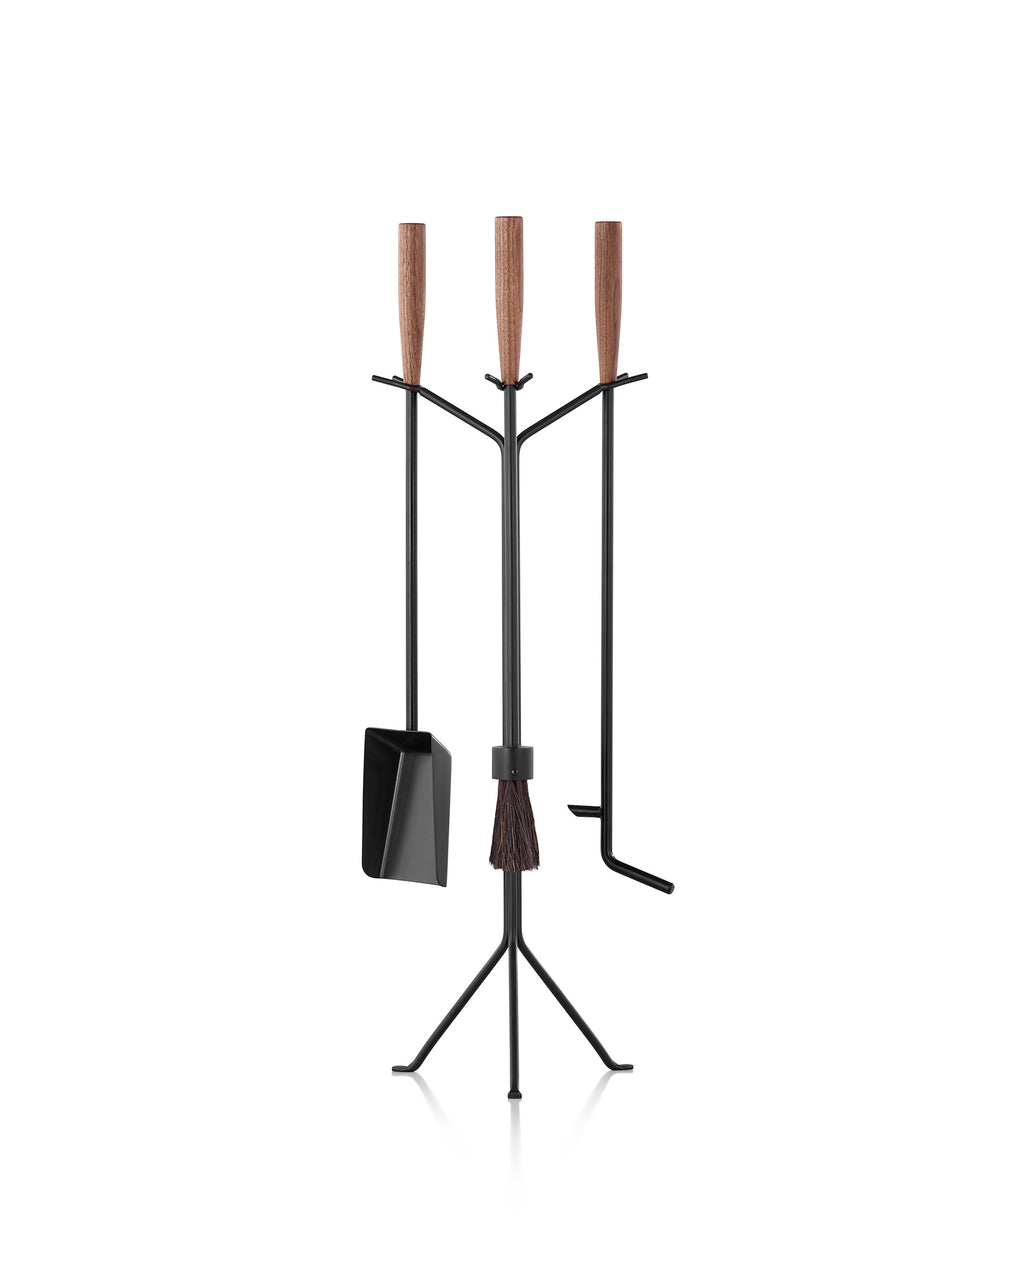 Nelson™ Fireplace Tool Set Designed by George Nelson for Herman Miller®